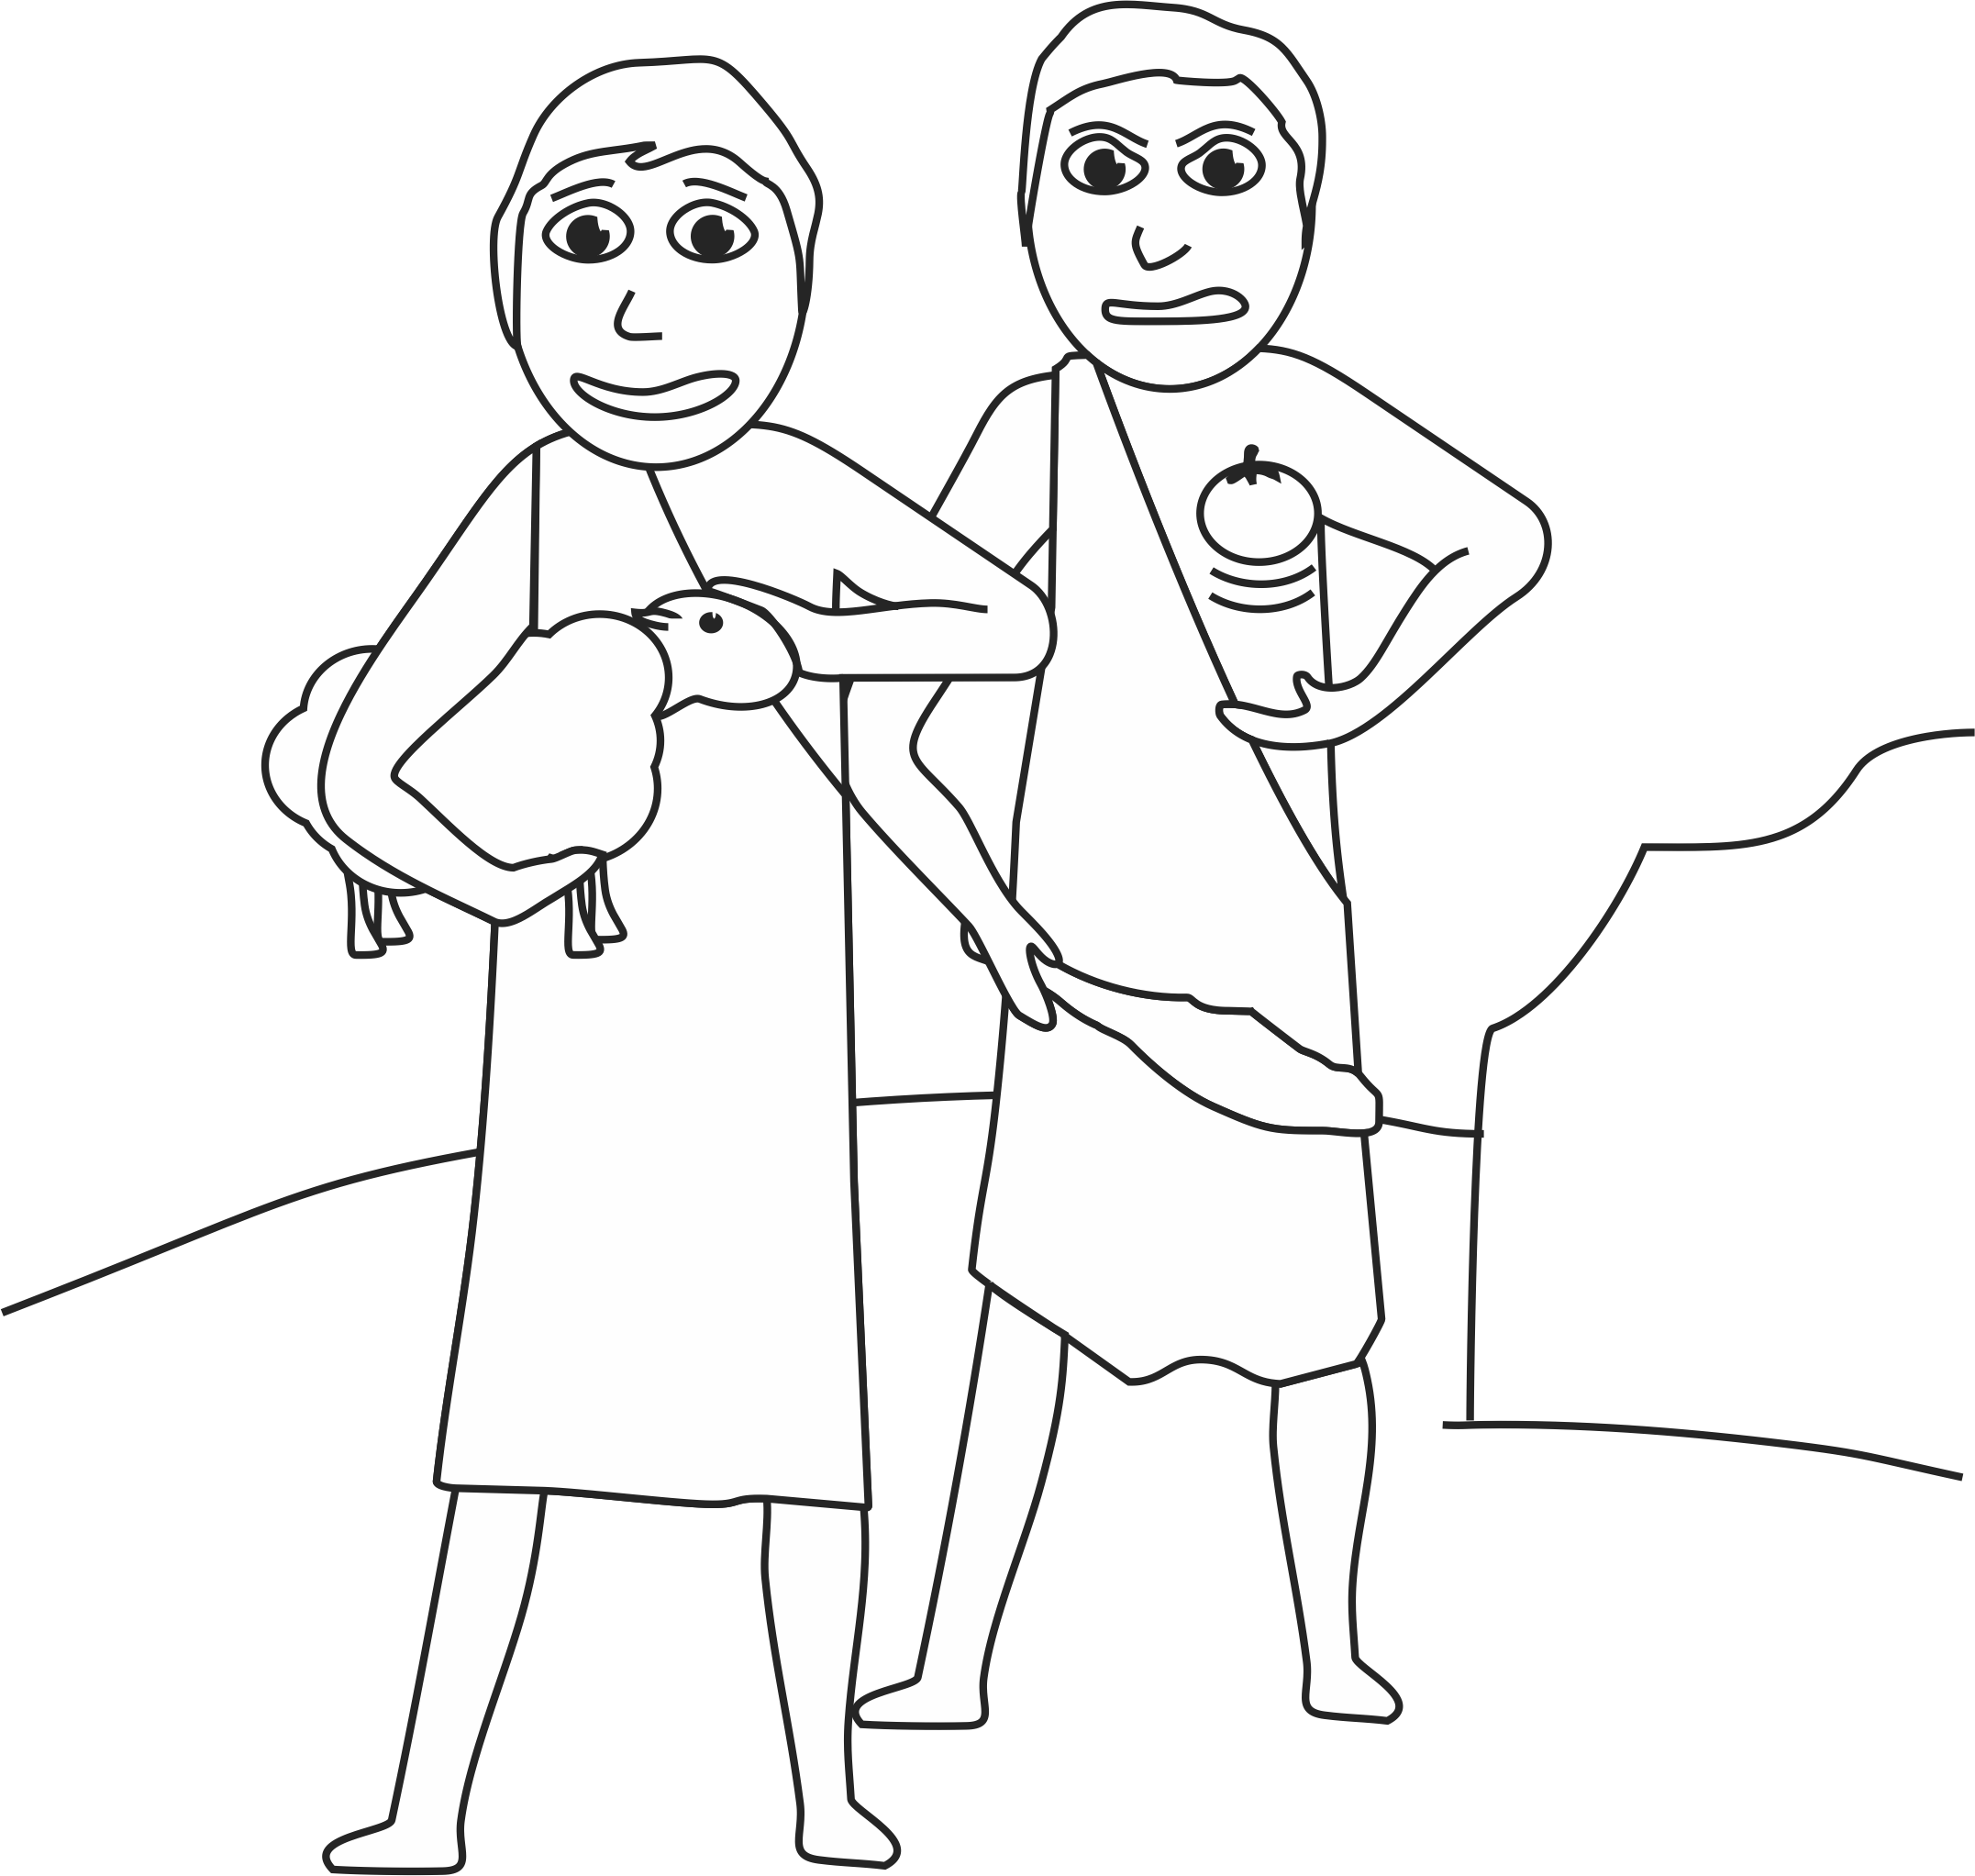 cain and abel coloring page cain and abel coloring sheet wesleyan kids coloring abel cain and page